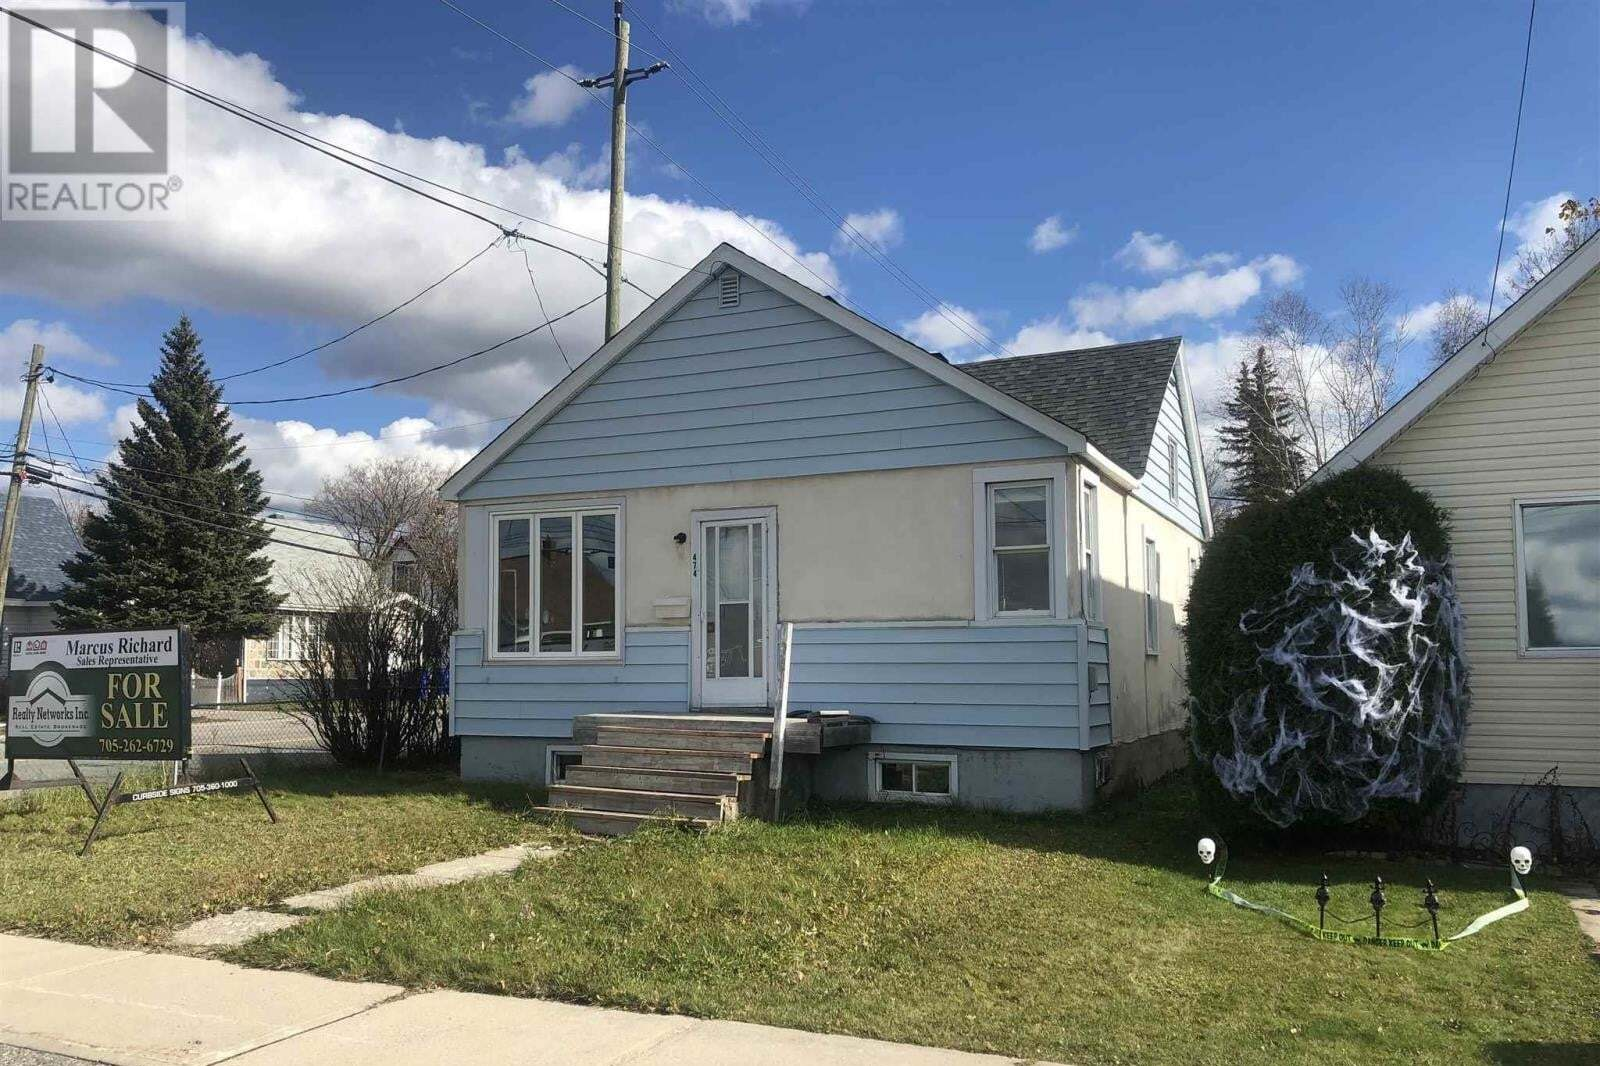 House for sale at 474 Spruce St N Timmins Ontario - MLS: TM202128